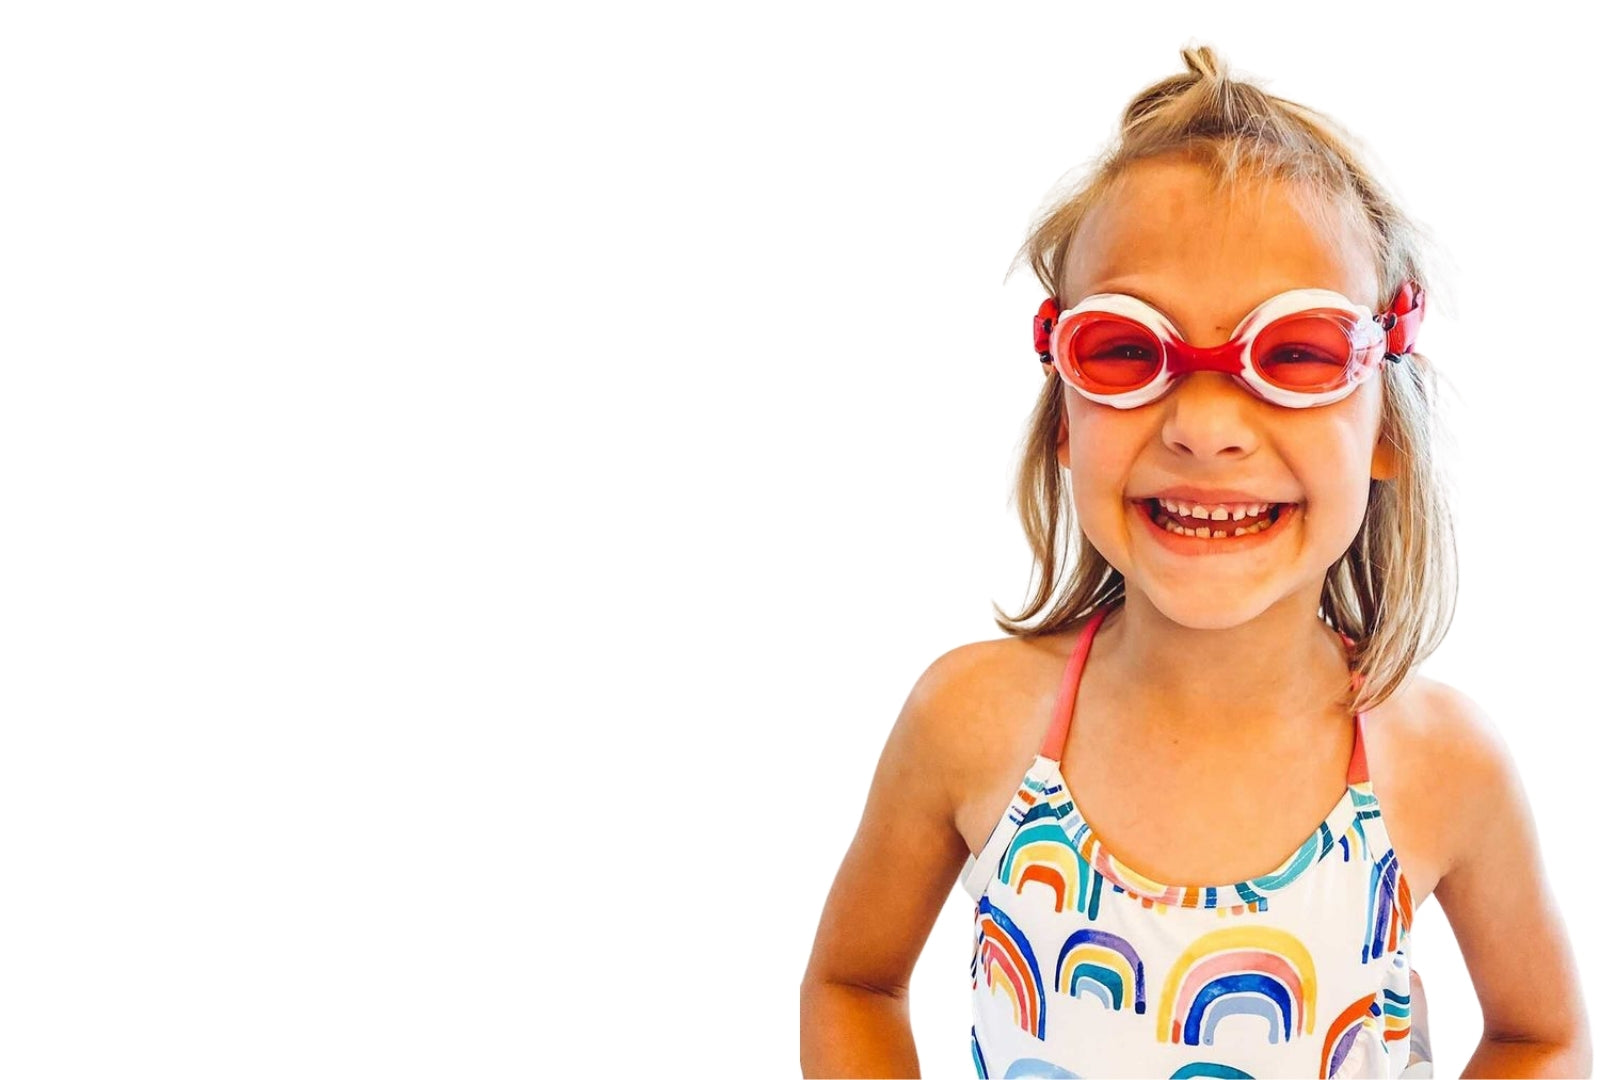 Smiling girl with light hair wearing Frogglez swim goggles wearing swimsuit